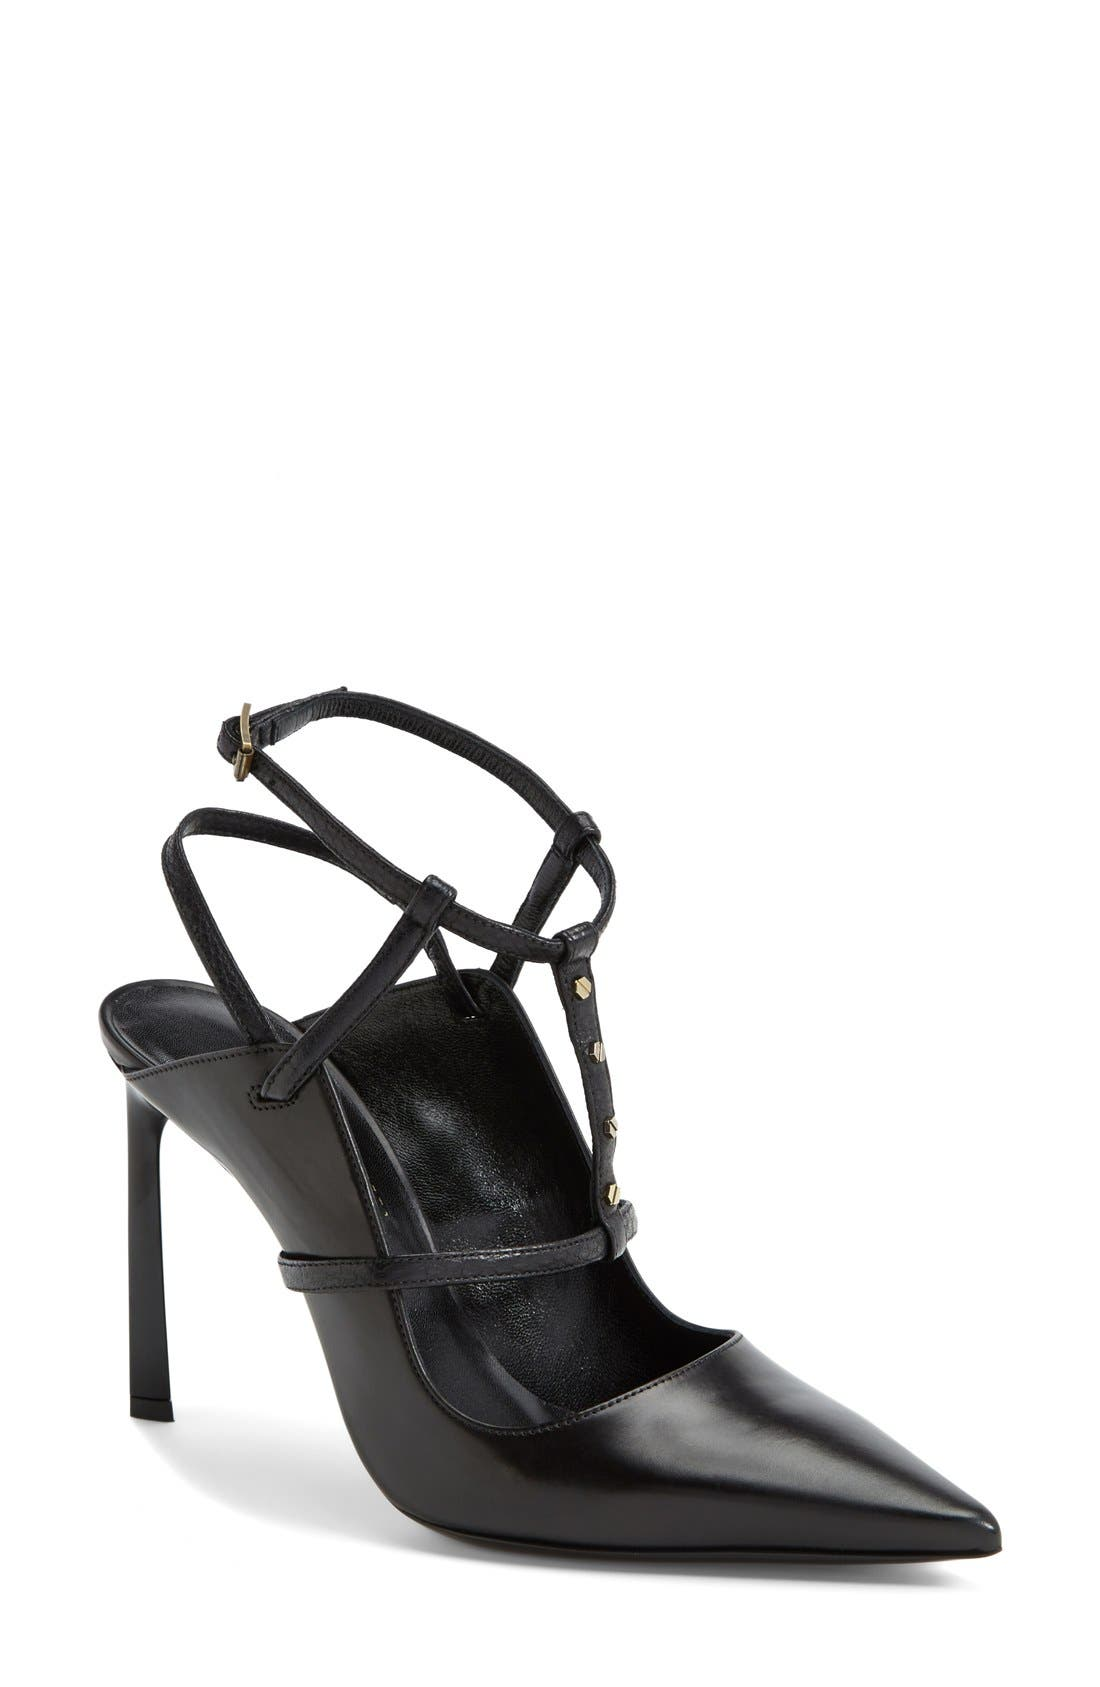 Alternate Image 1 Selected - Lanvin Studded T-Strap Leather Pump (Women)